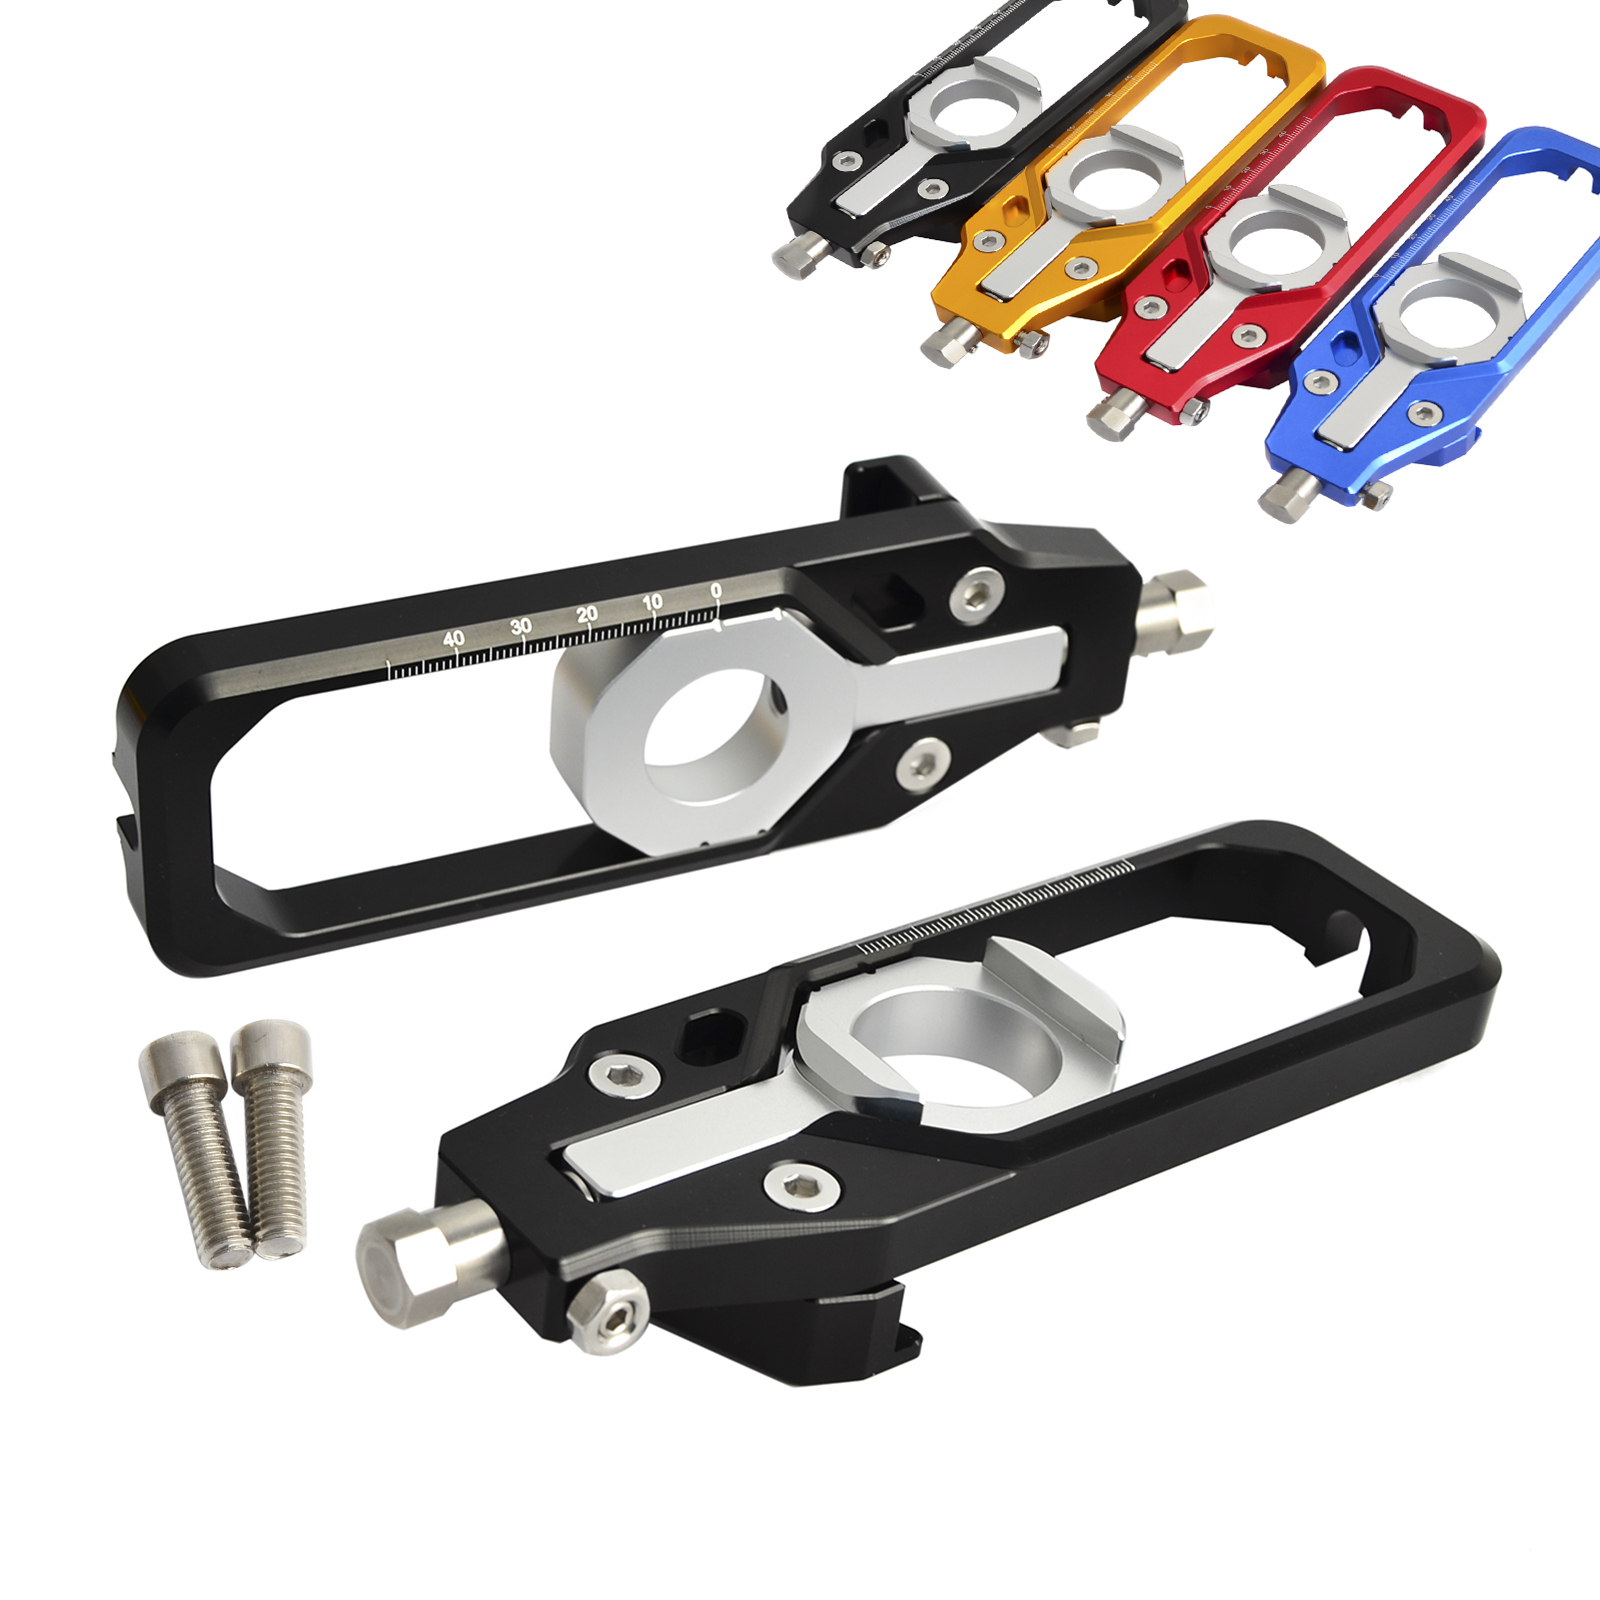 Motorcycle Left & Right Chain Adjuster Tensioners For BMW S1000RR 2009-2017 S1000R 2013-2017 S1000 RR HP4 2013 2014 new motorcycle cnc billet rear axle spindle chain adjuster blocks for bmw hp4 2012 2014 s1000r 2013 2015 s1000rr 09